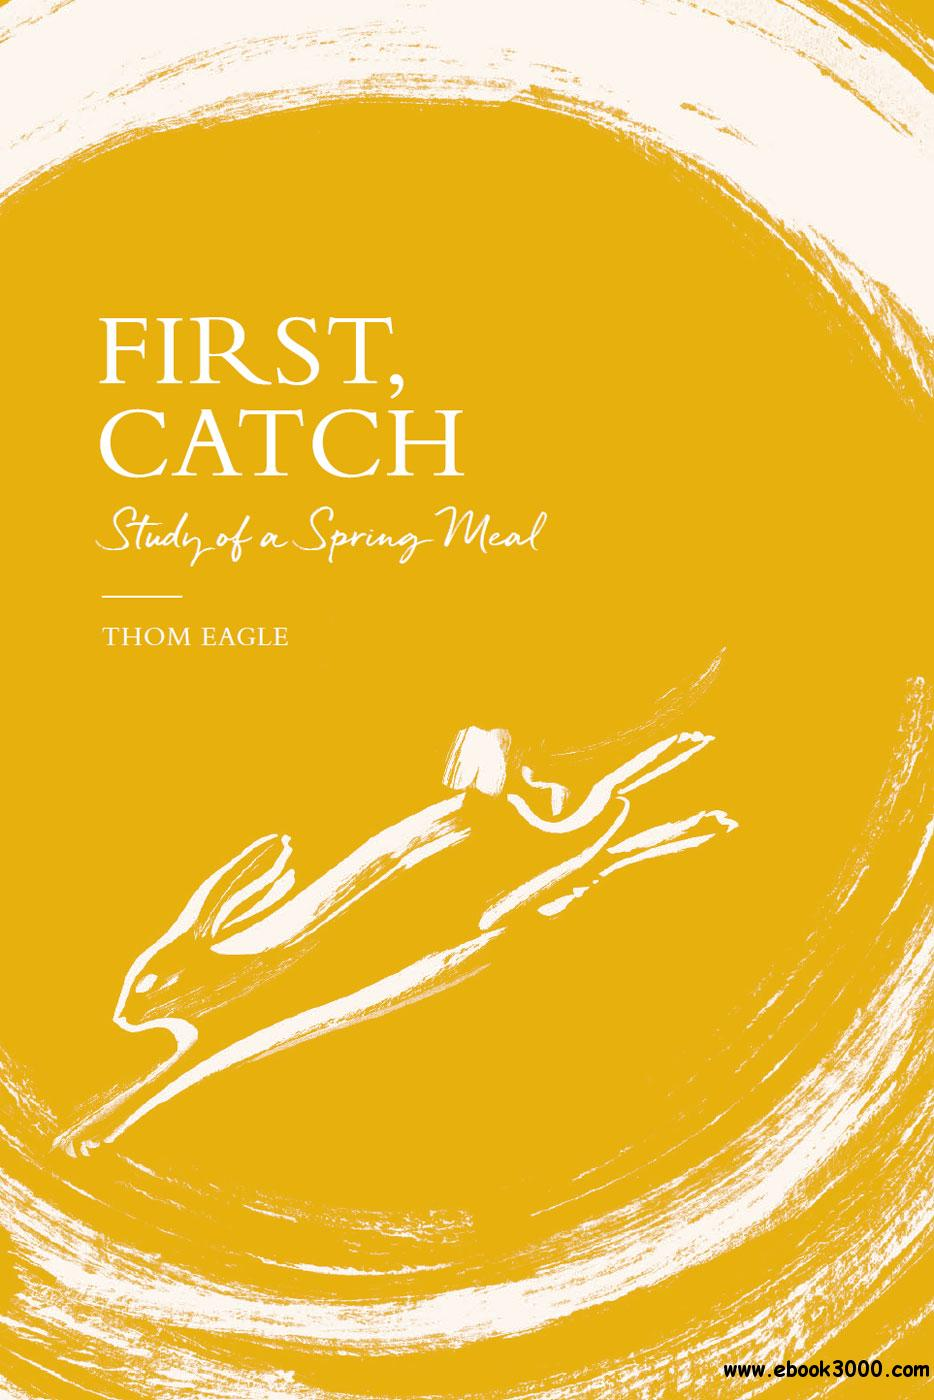 First, Catch: Study of a Spring Meal